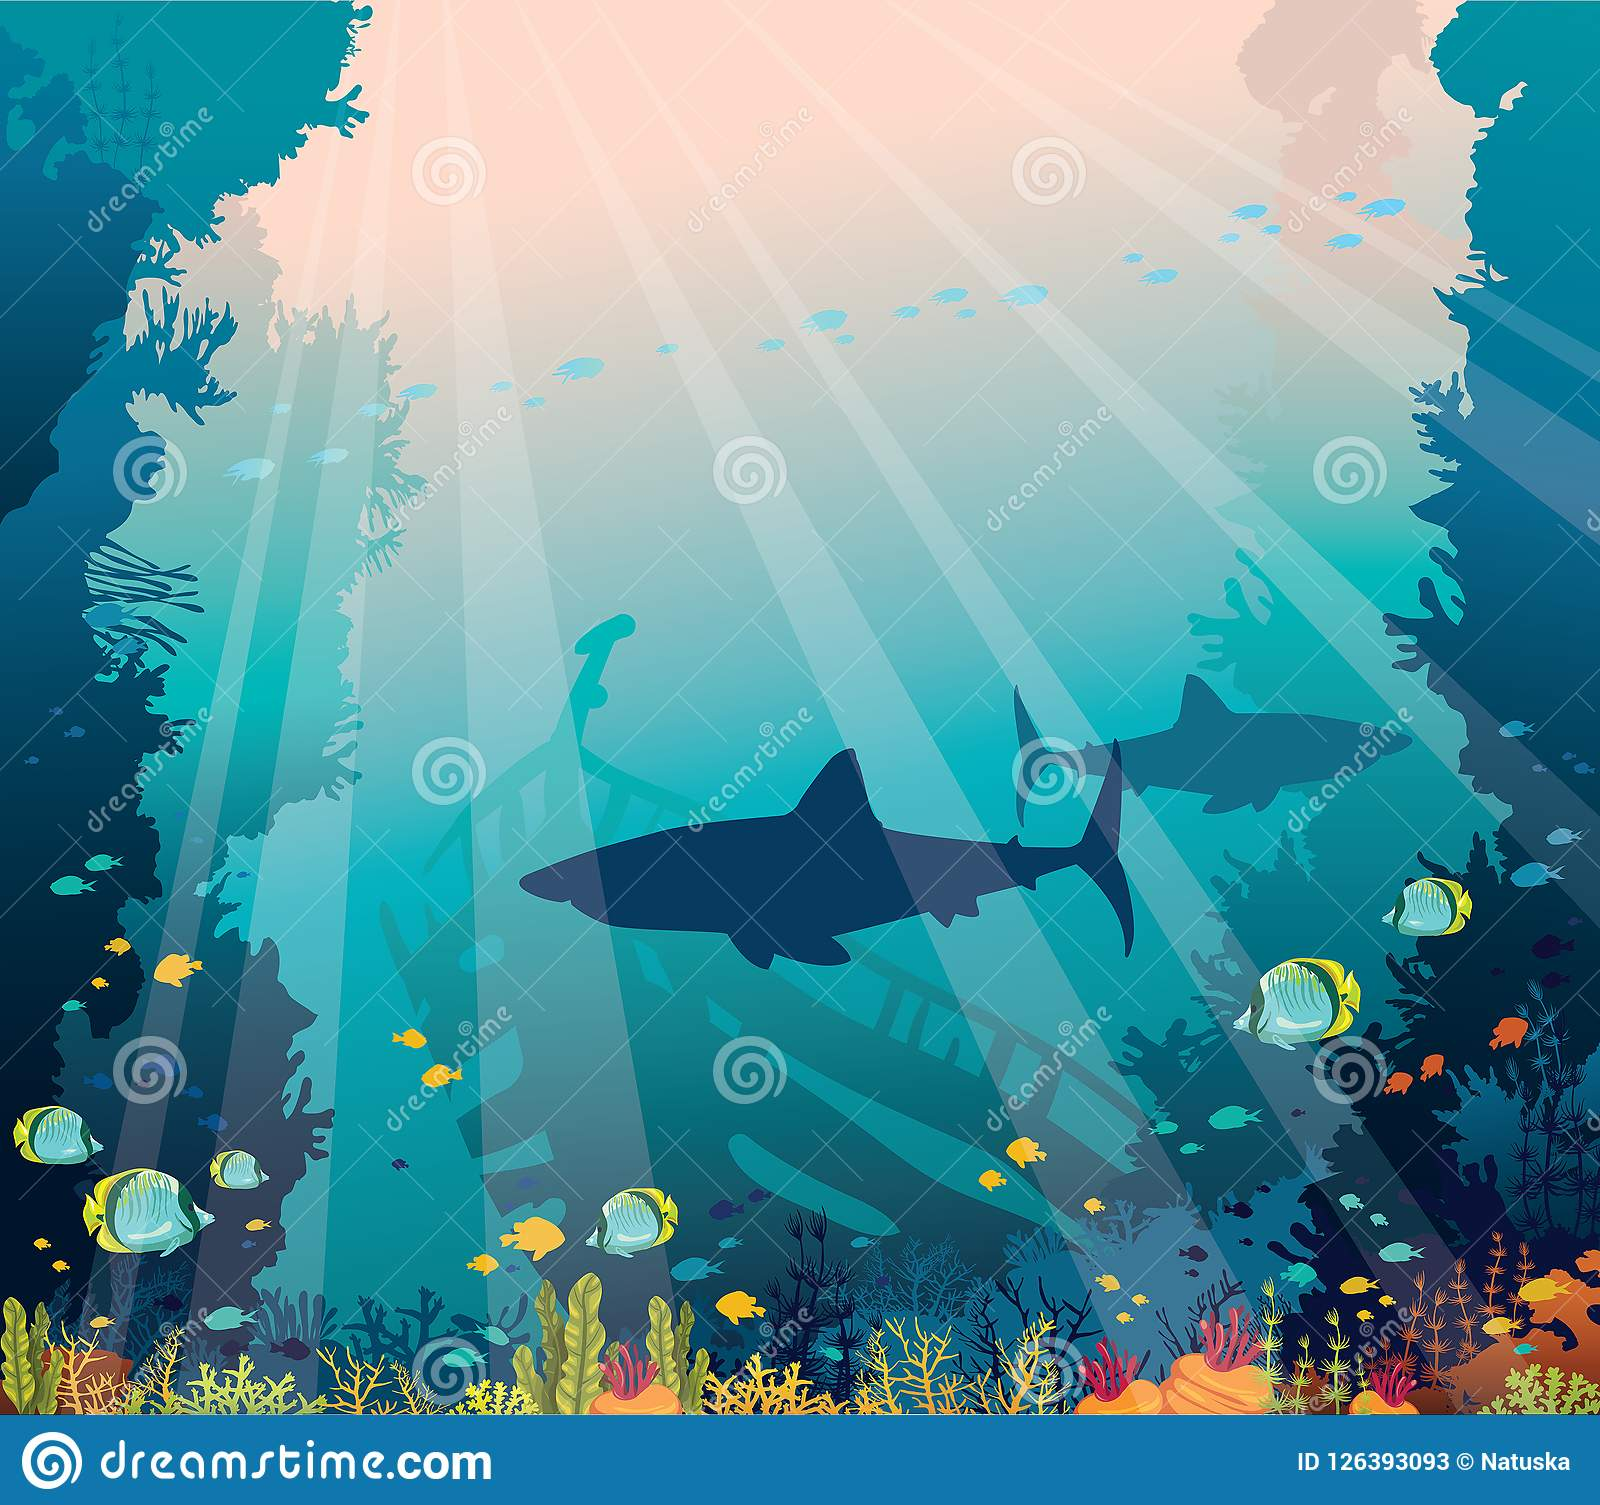 Underwater Sea - Sharks, Coral Reef And Sunken Ship  Stock